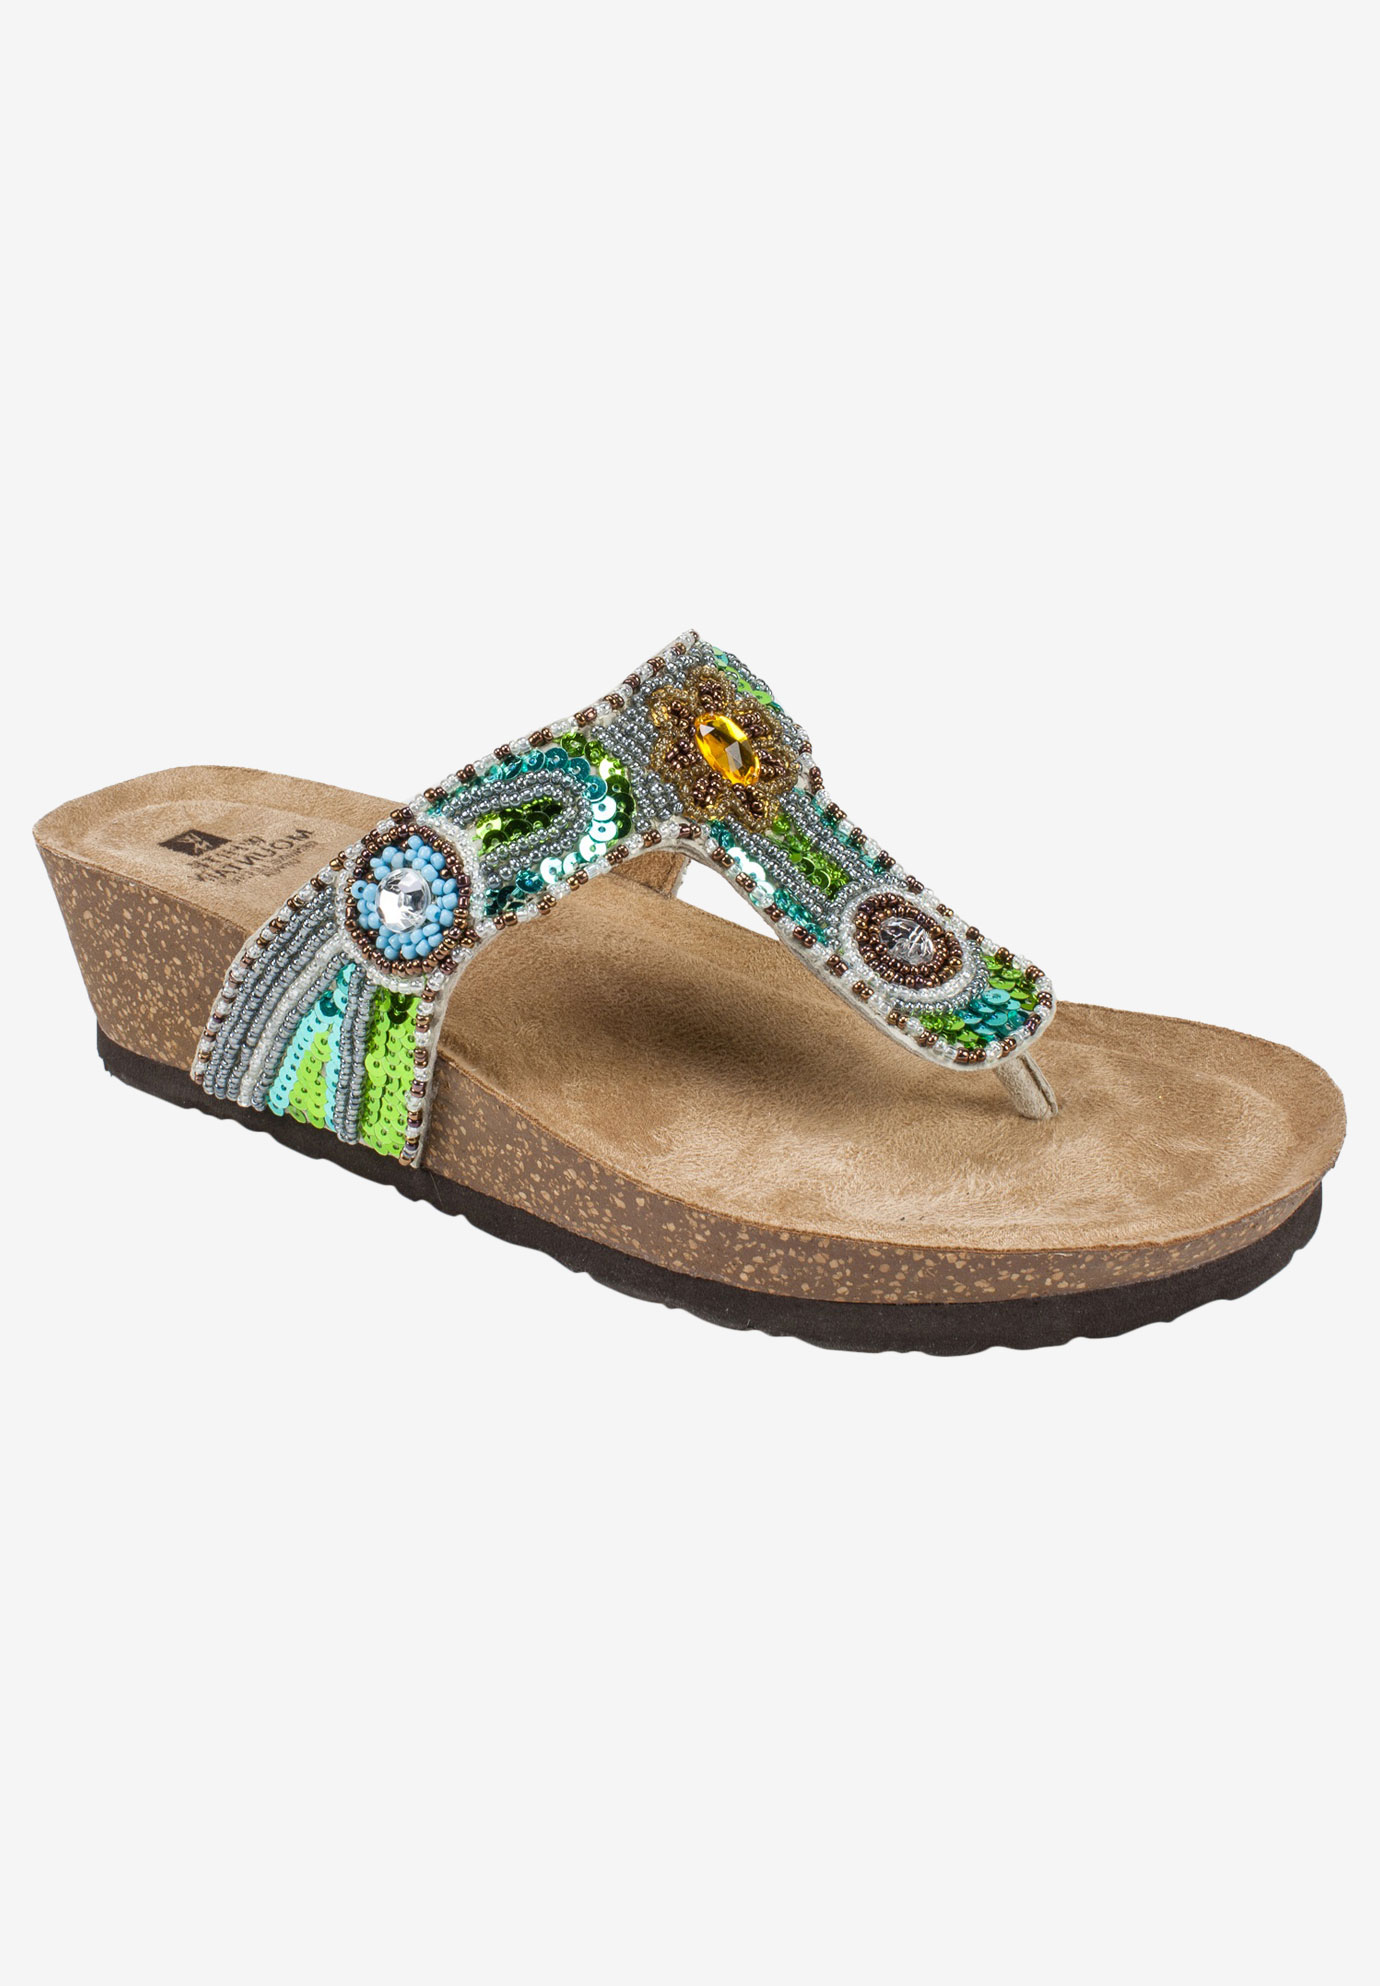 Bluejay Sandal by White Mountain,